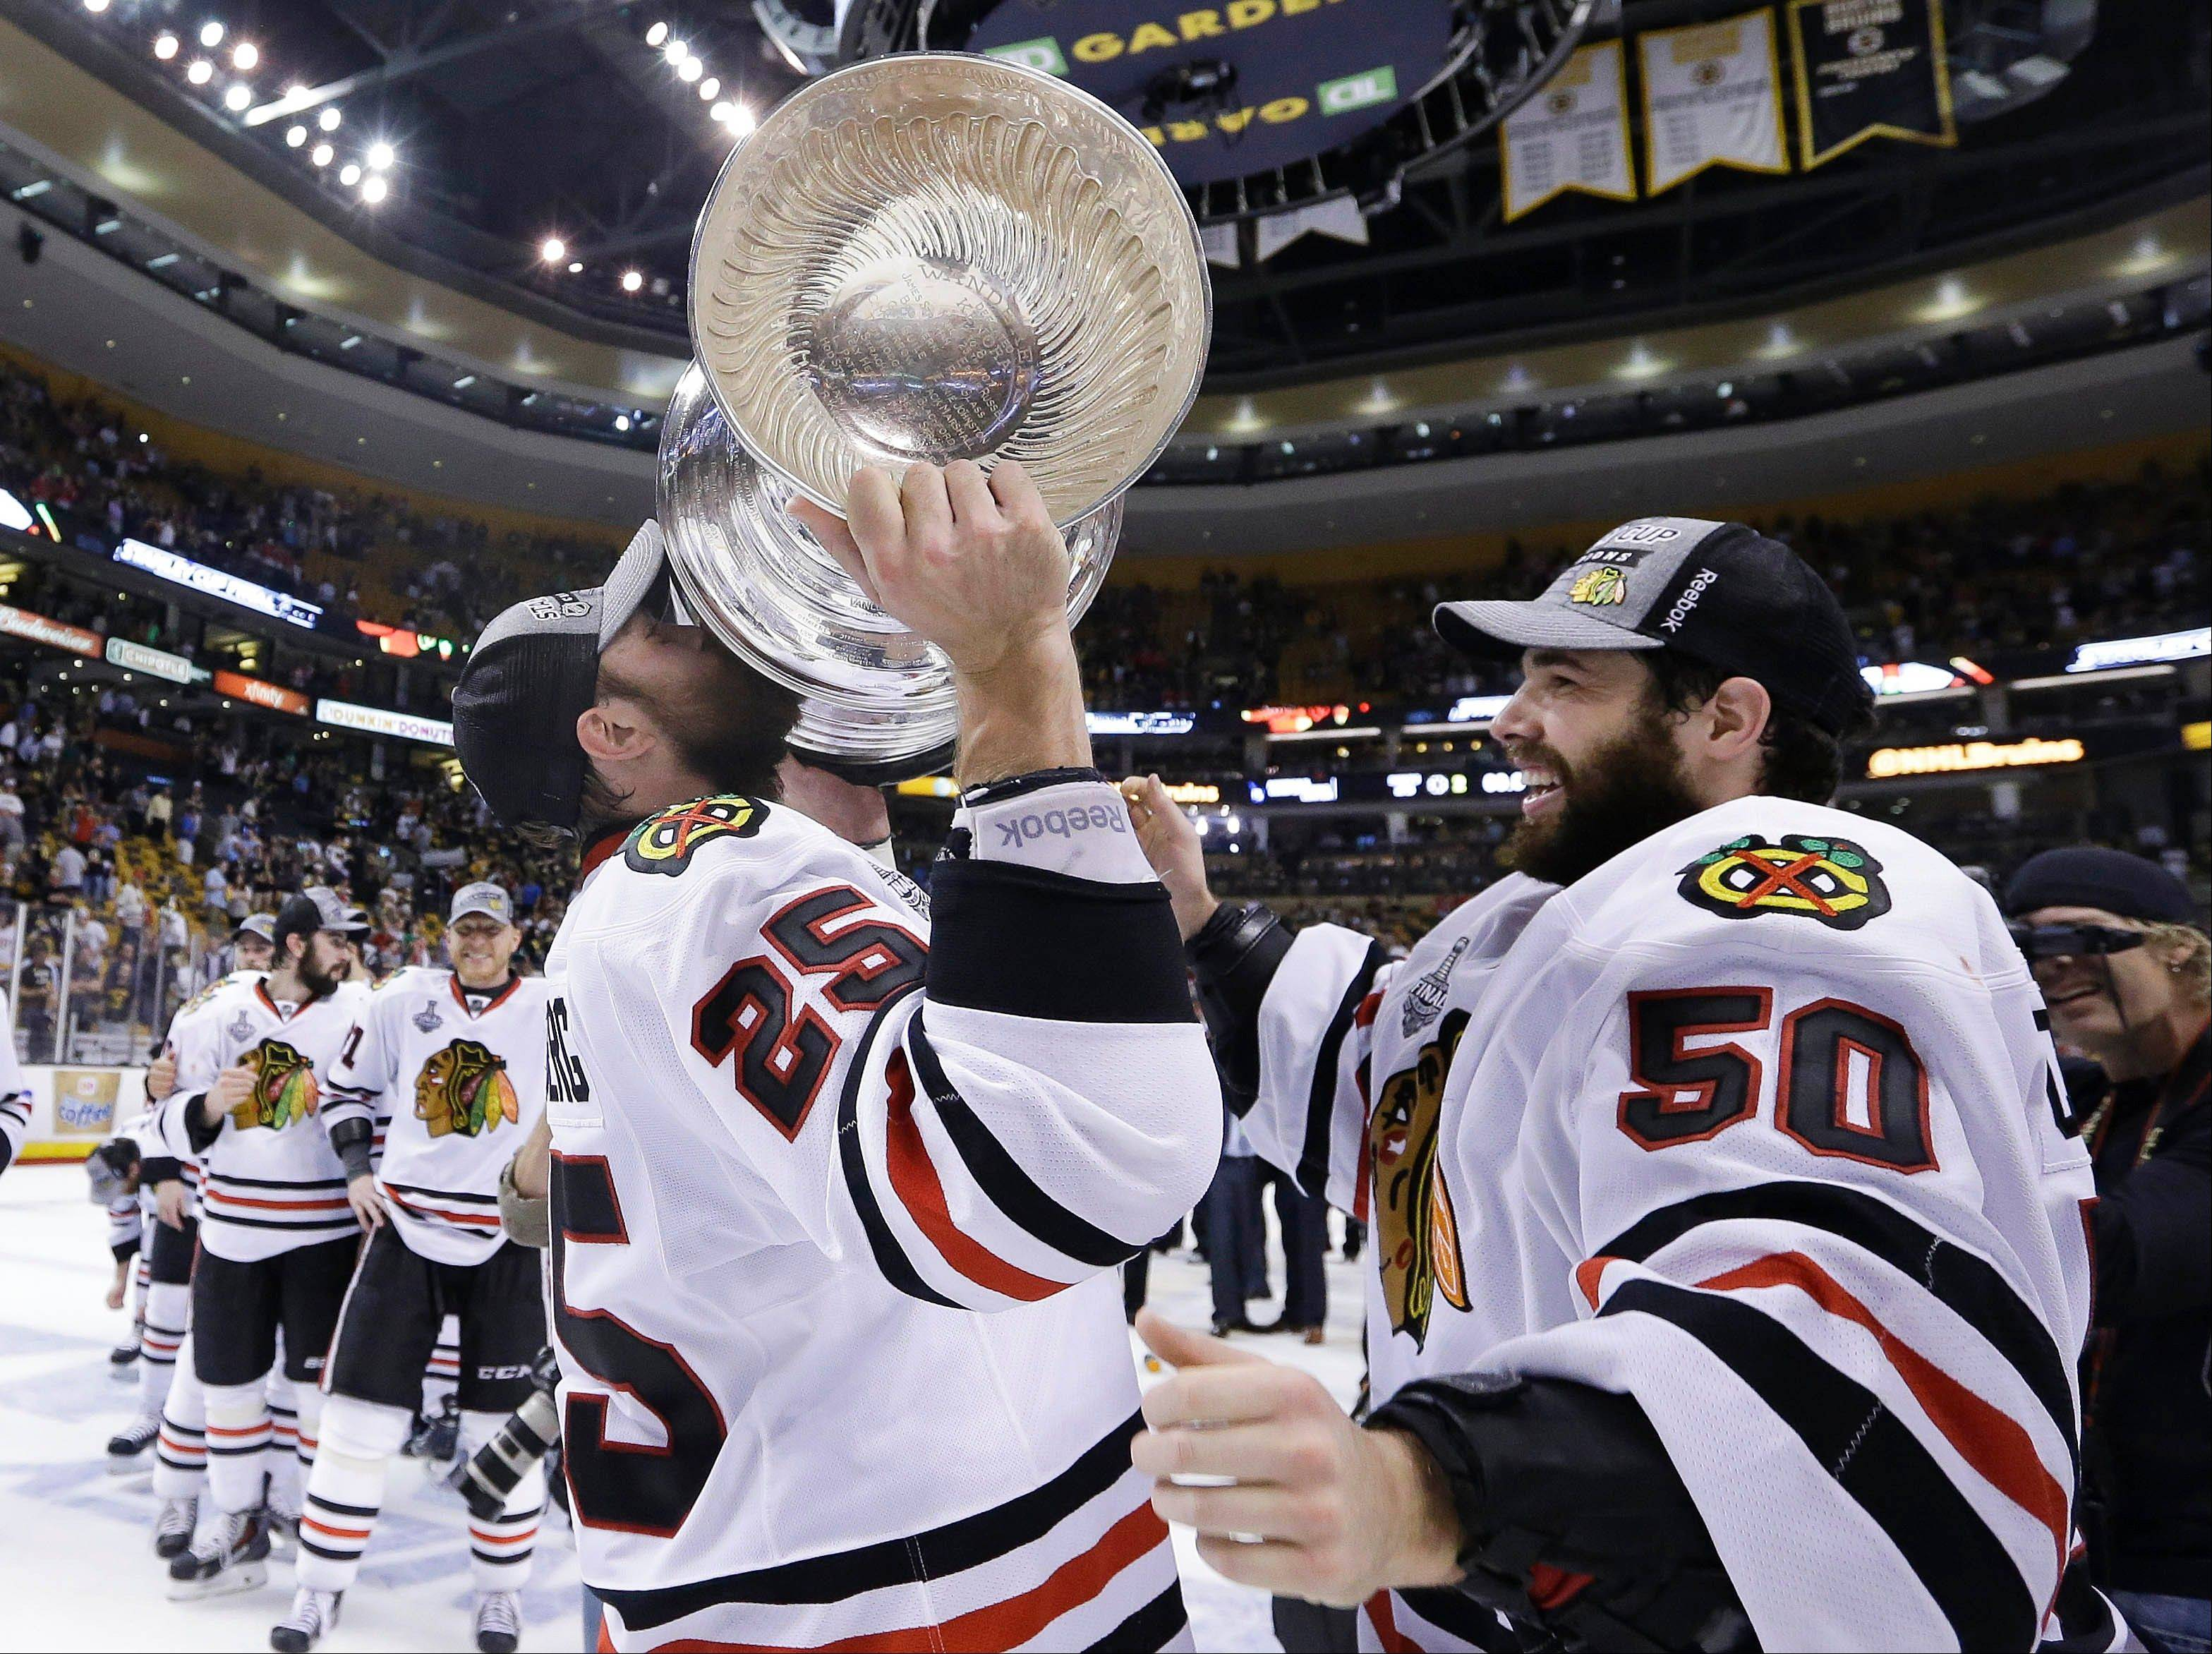 Chicago Blackhawks left wing Viktor Stalberg (25), of Sweden, hoists the Stanley Cup alongside goalie Corey Crawford (50) after the Blackhawks beat the Boston Bruins in Game 6 of the NHL hockey Stanley Cup Finals Monday in Boston.